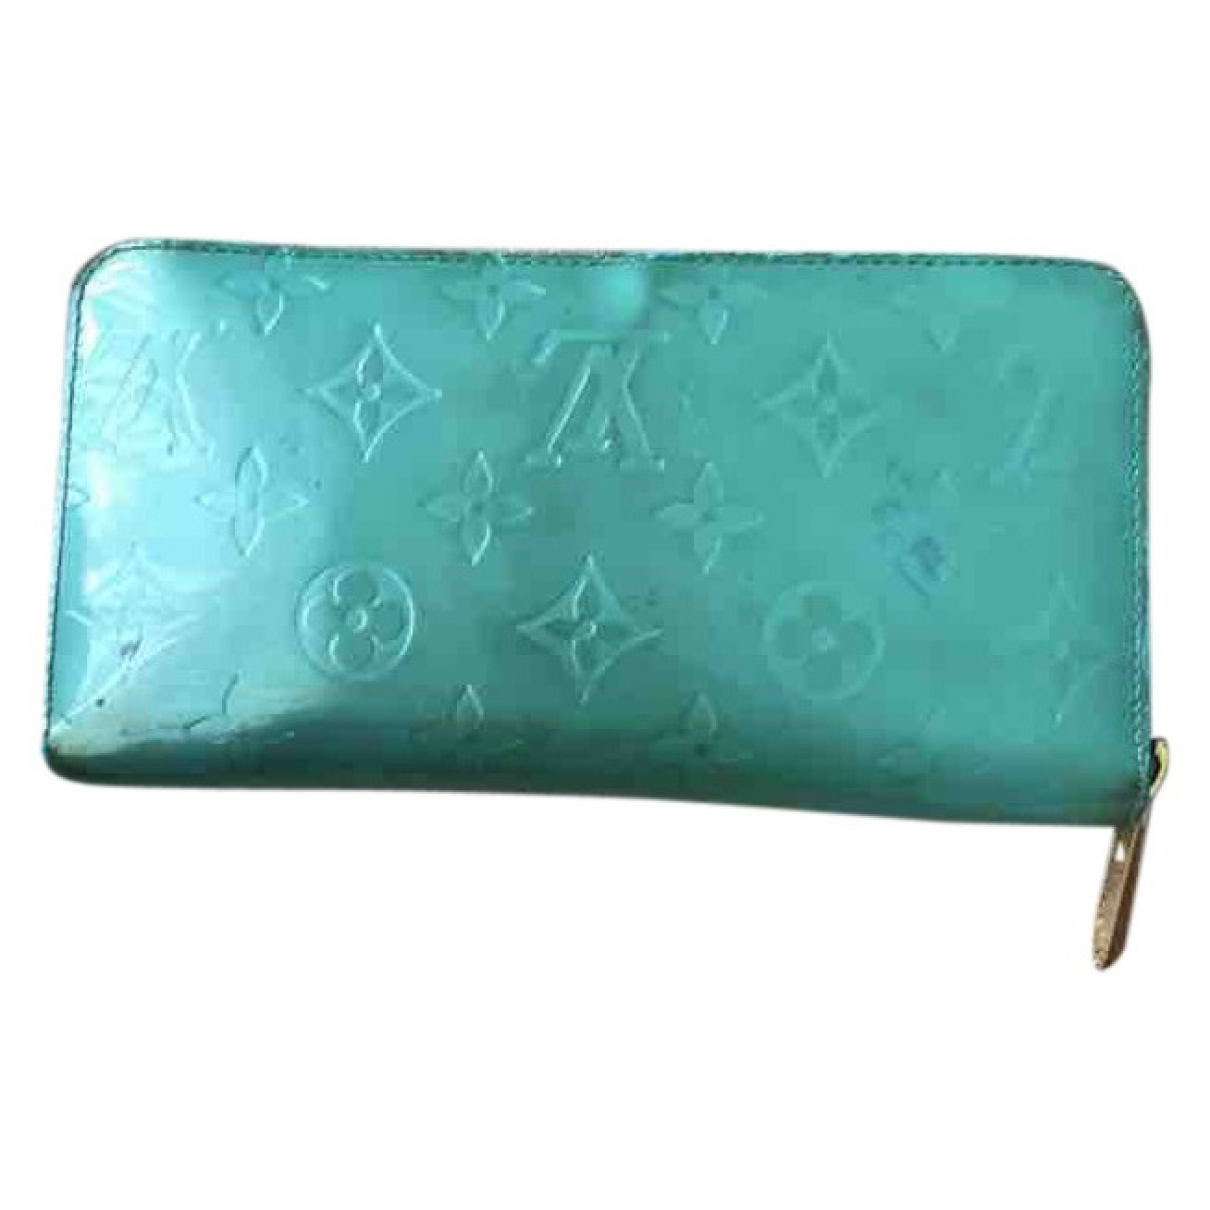 Louis Vuitton \N Turquoise Patent leather Clutch bag for Women \N